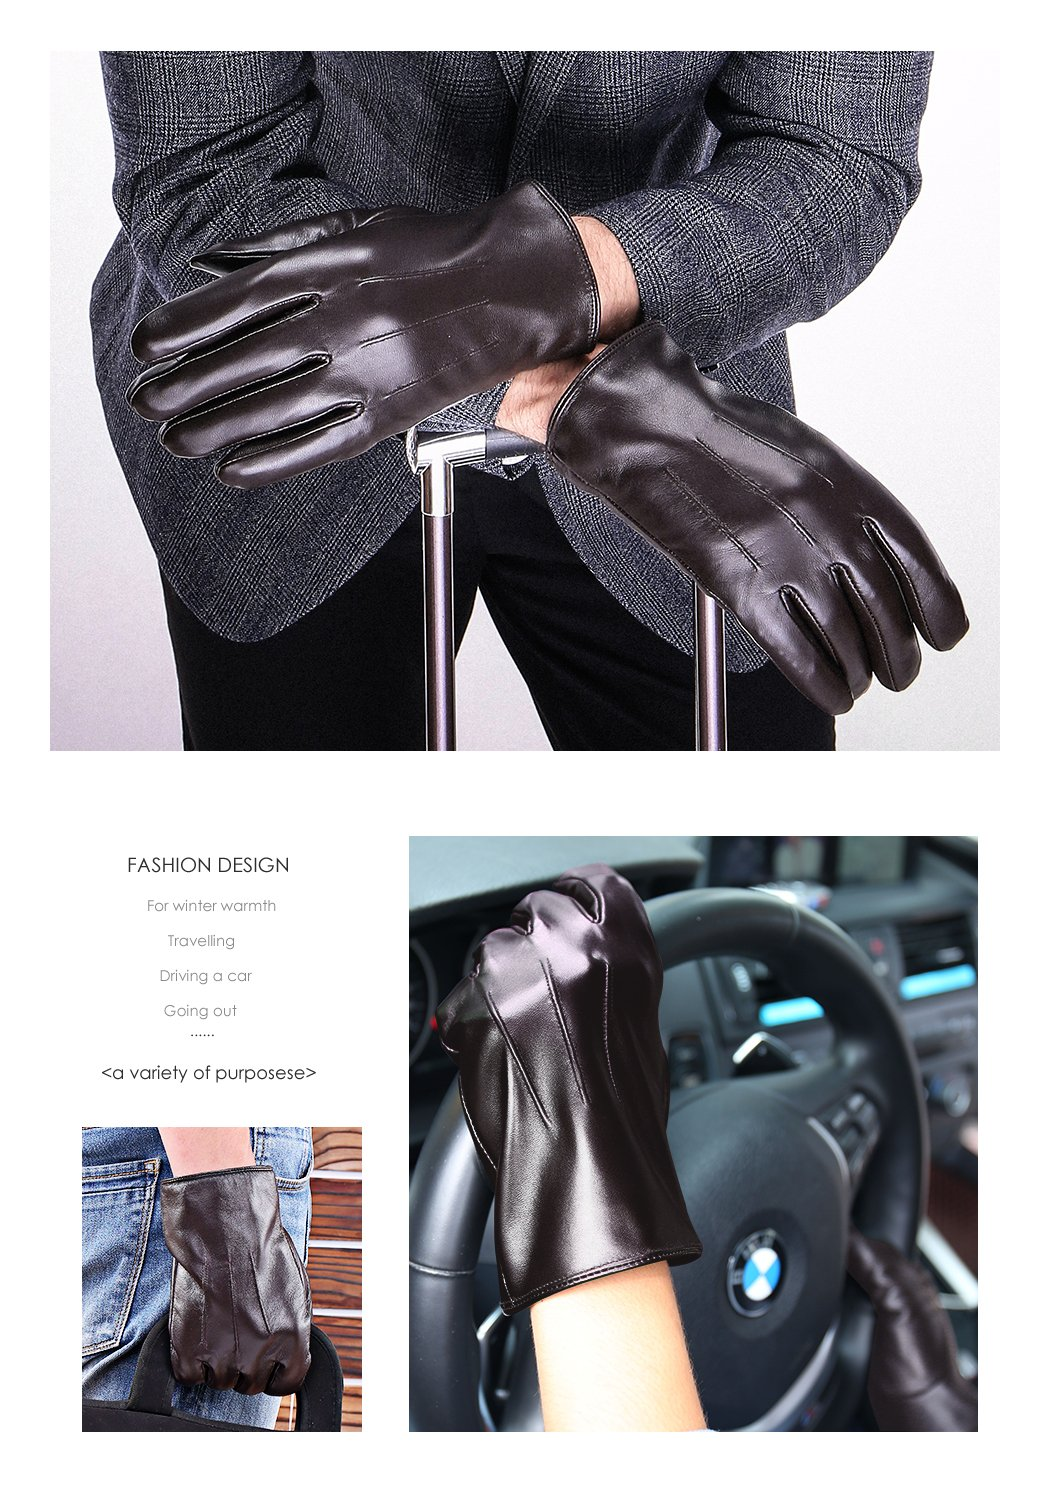 Leather Gloves for men,Anccion Best Touchscreen Winter Warm Italian Nappa Geniune Leather Gloves for Men's Texting Driving Cashmere/fleece Lining (Large, Brown) by Anccion (Image #5)